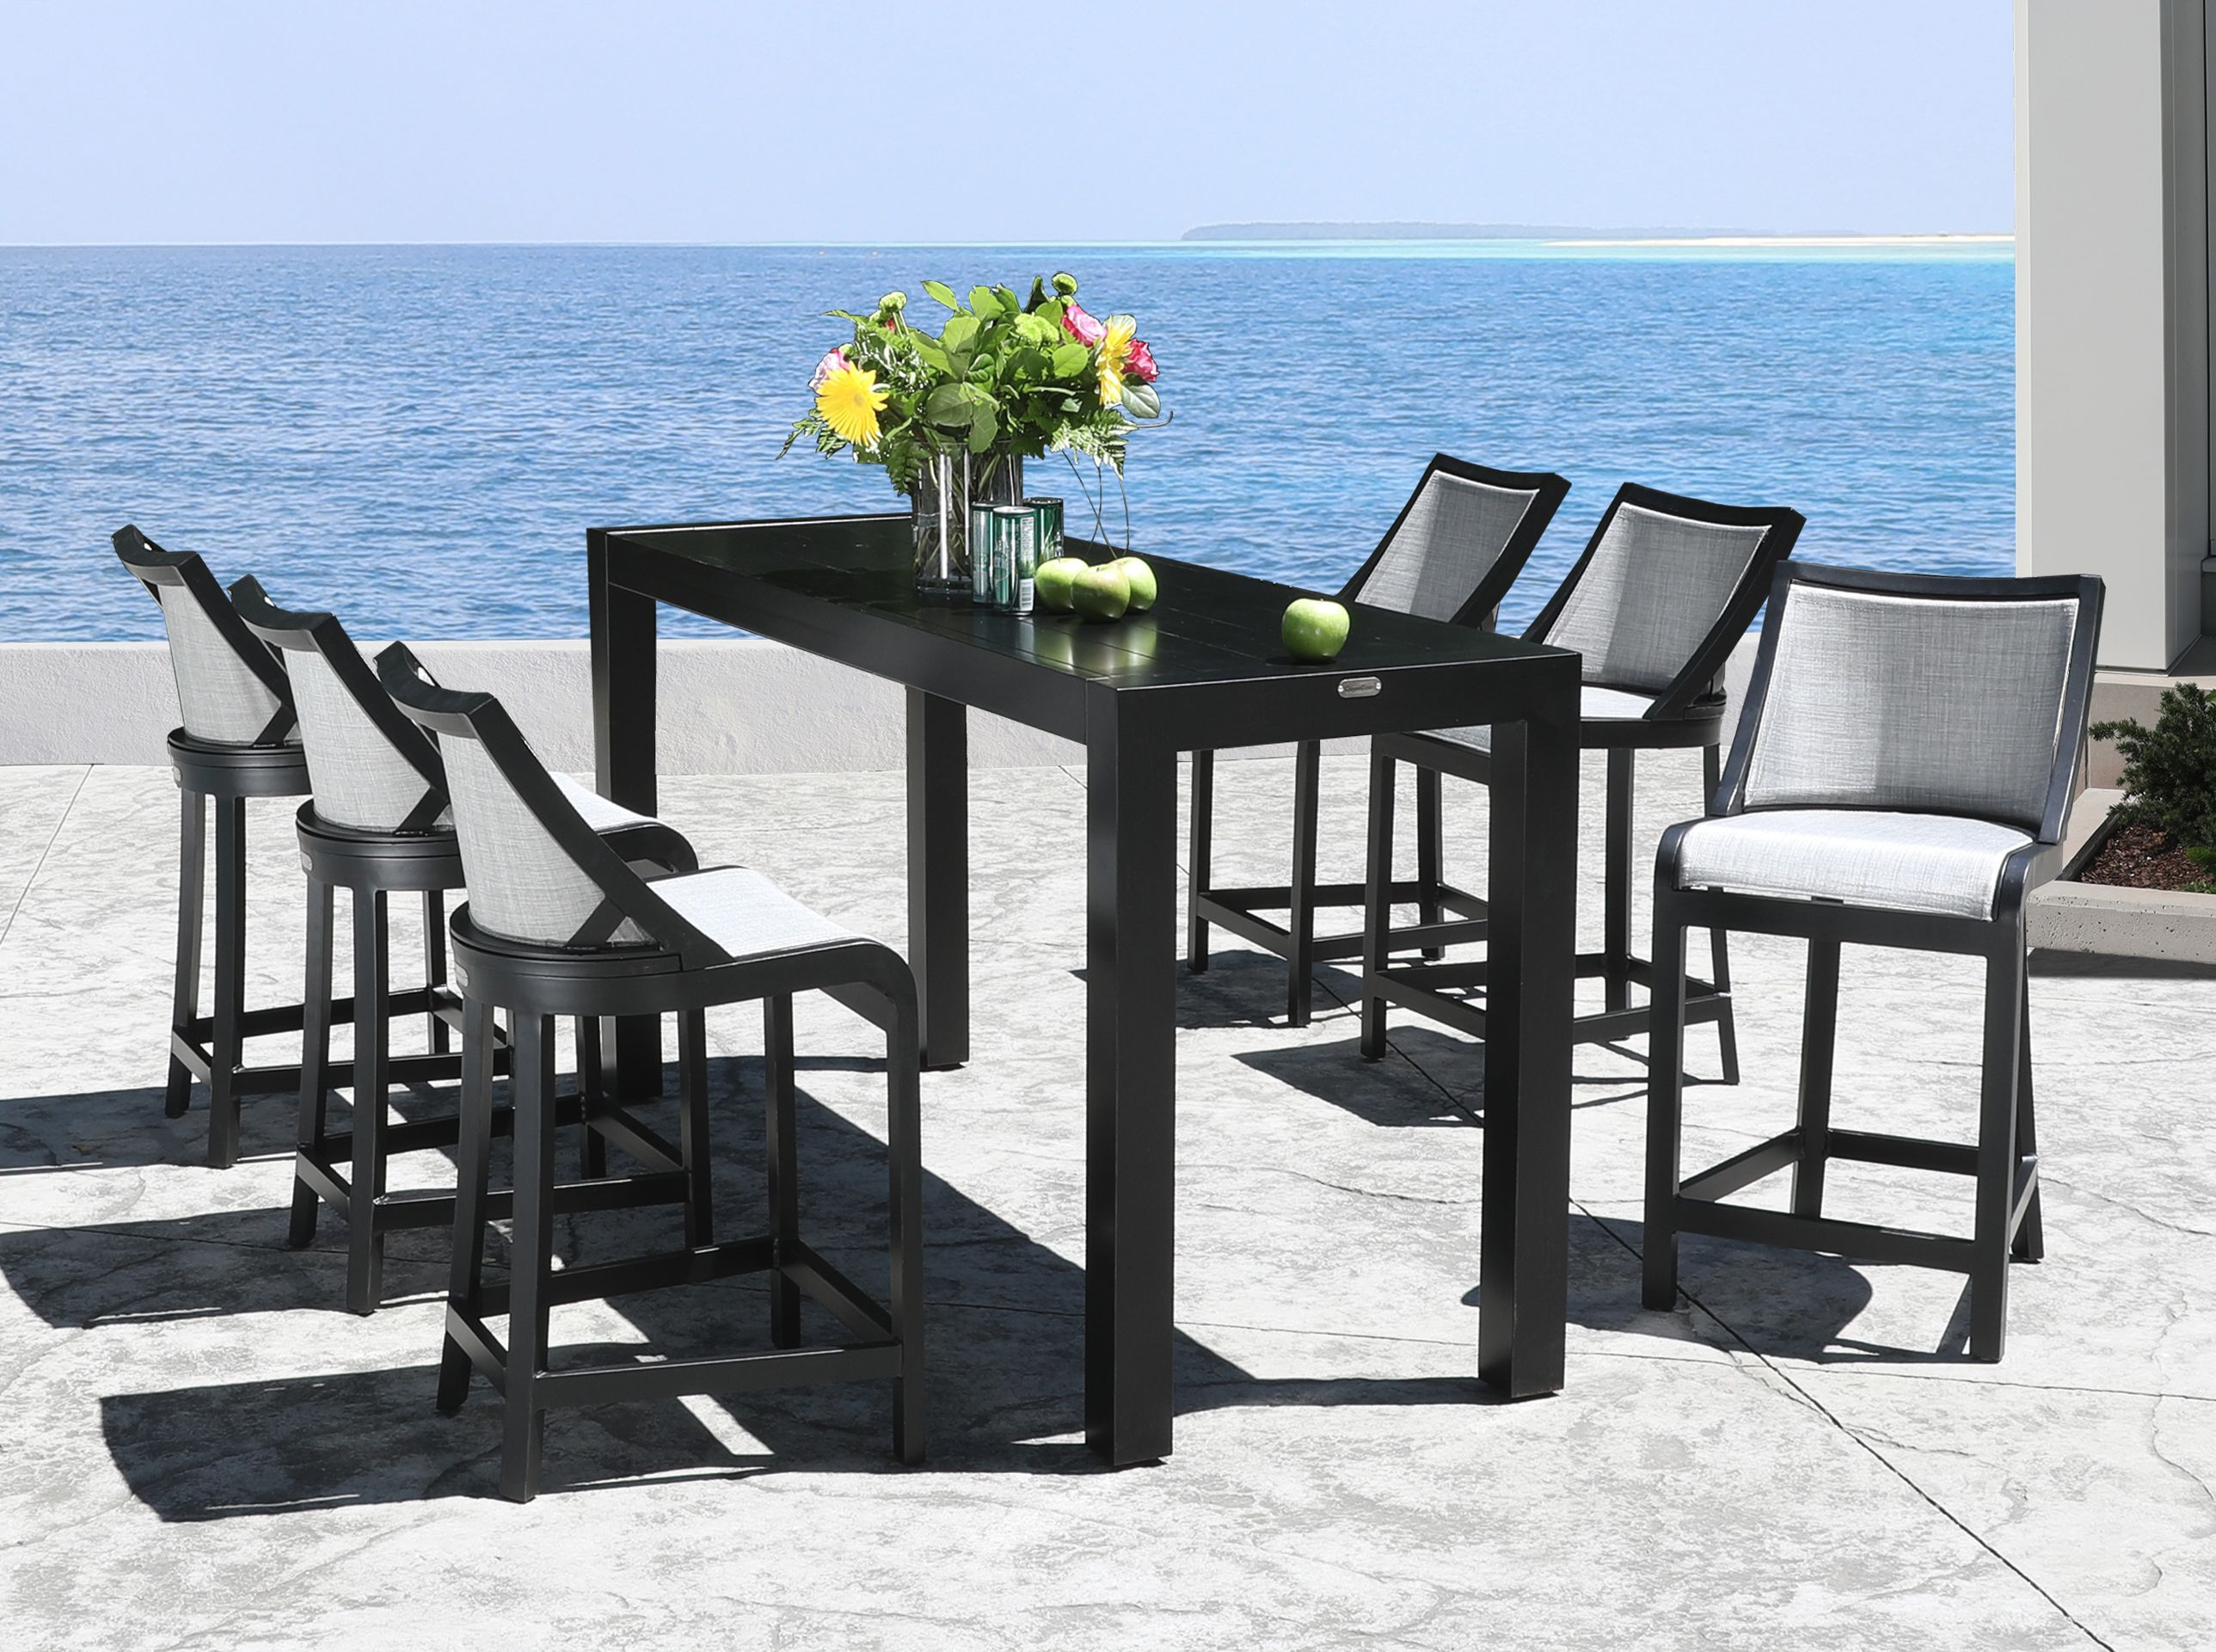 Better Together A Comfortable Outdoor Dining Experience In Style